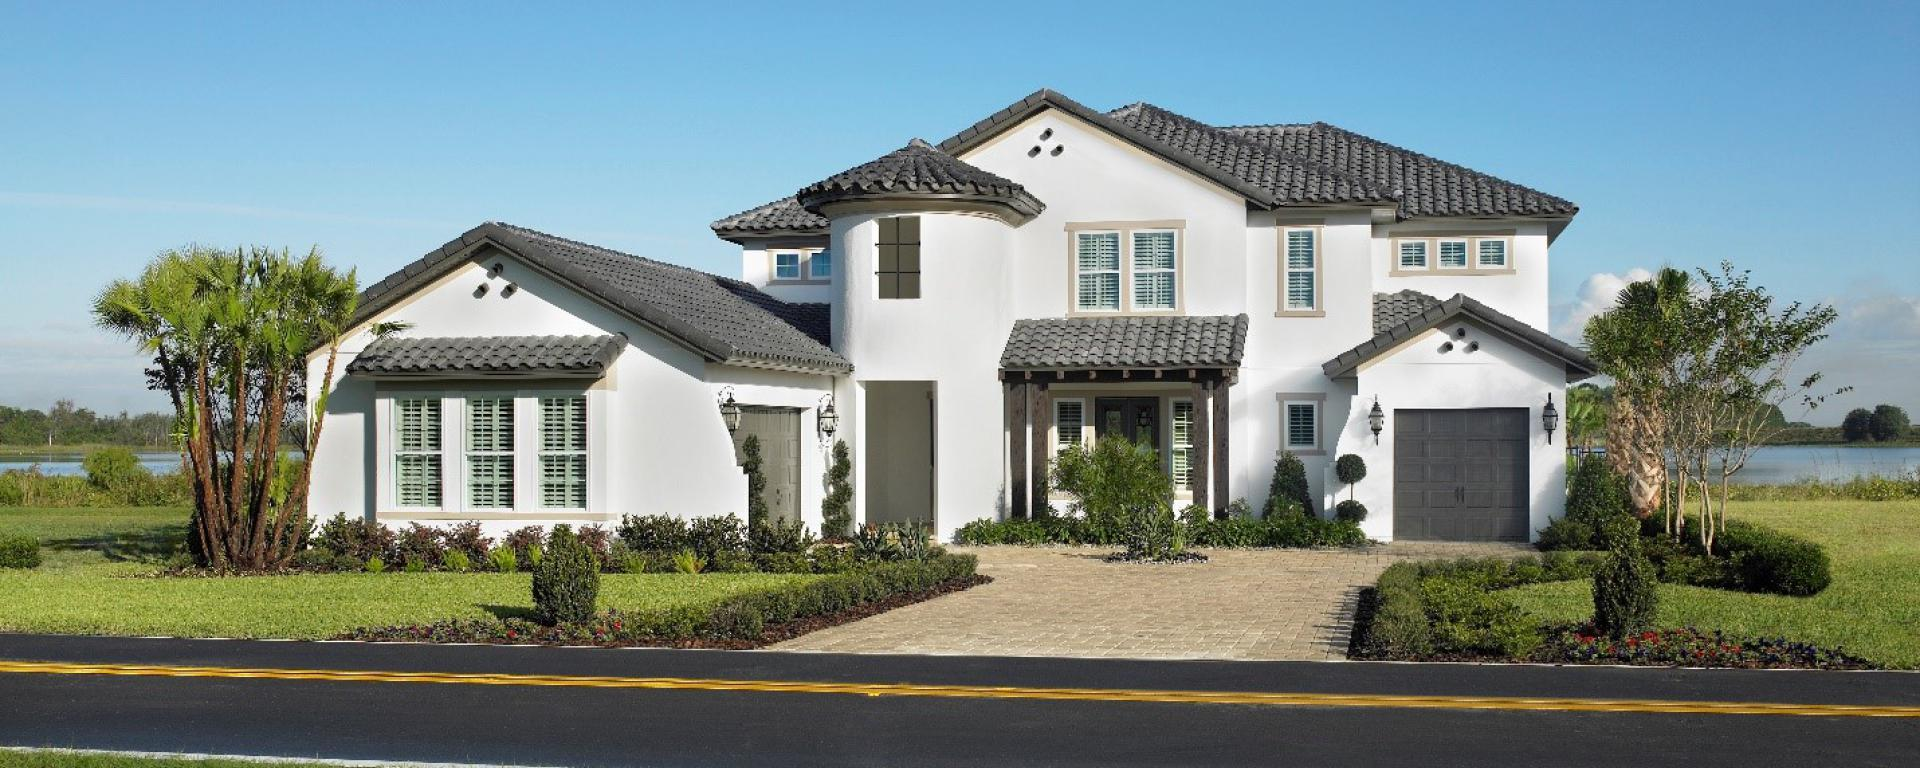 brighton new home plan for latham park estate community in orlando